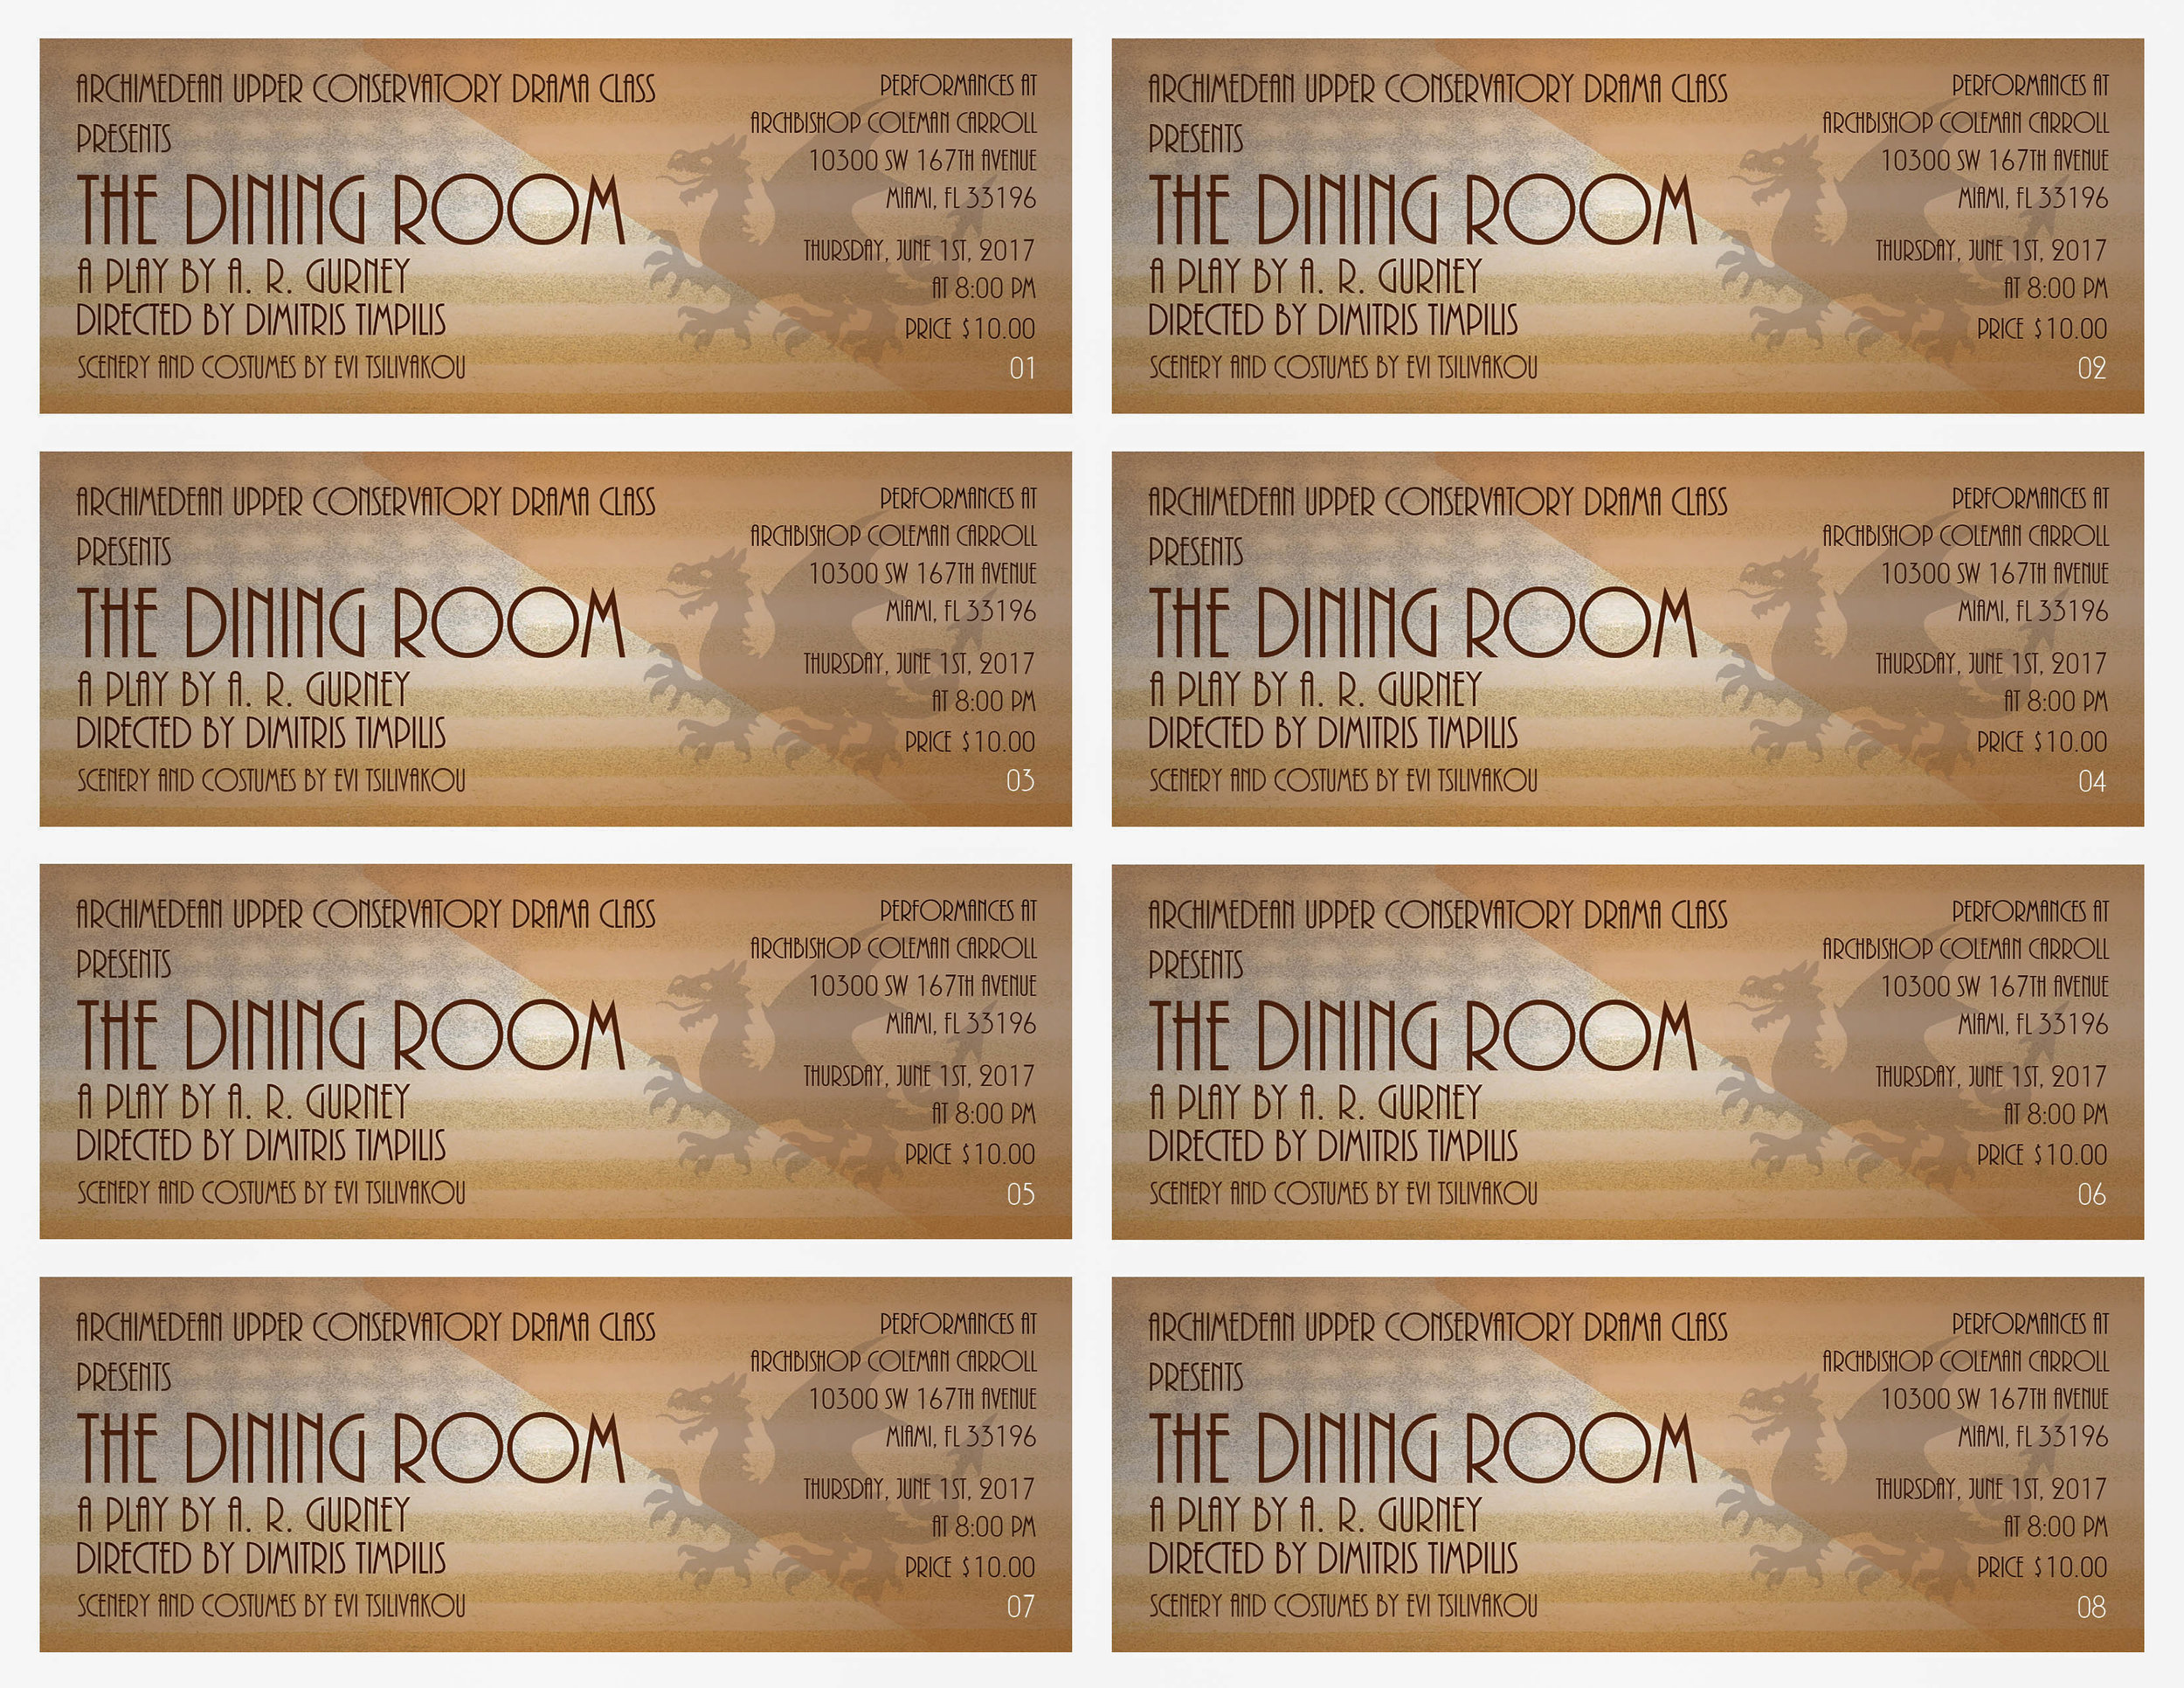 2017 The Dining Room by A. R. Gurney Jr. Tickets 1-8.jpg